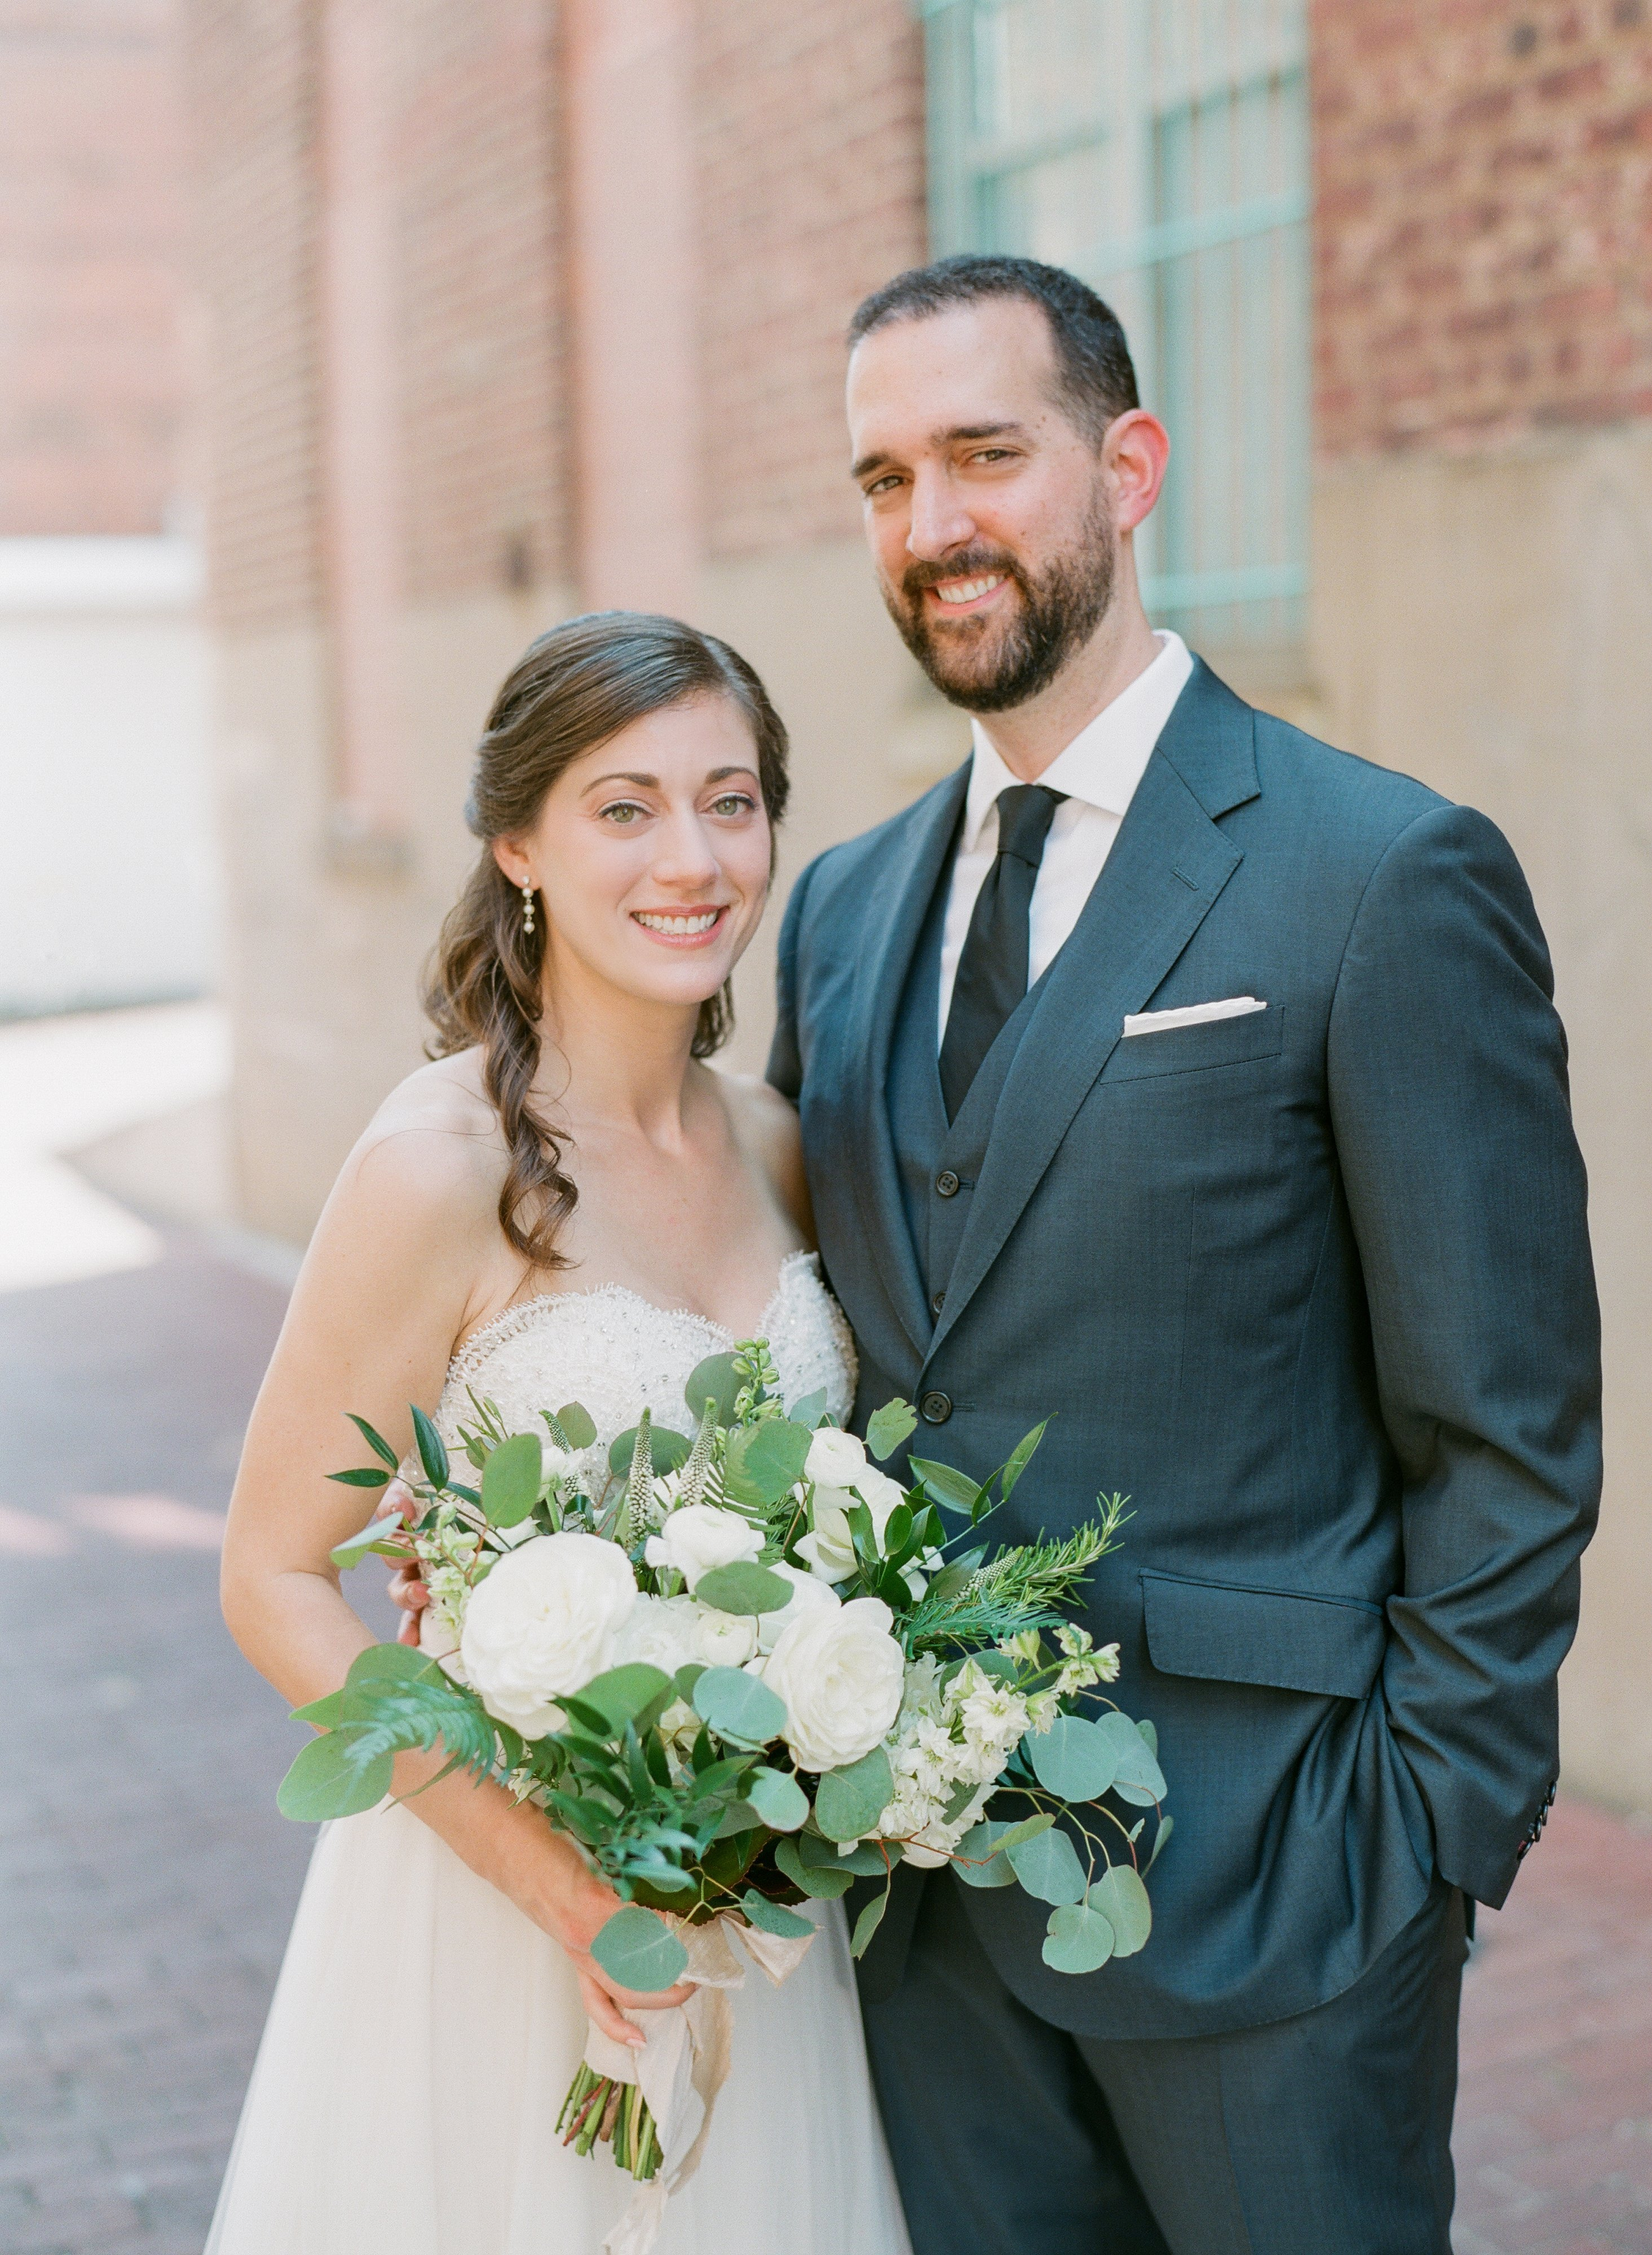 Who Says You Need Ornate Decor to Make a Big Impact?—Just Look at this Simple, Stunning Wedding at LongView Gallery